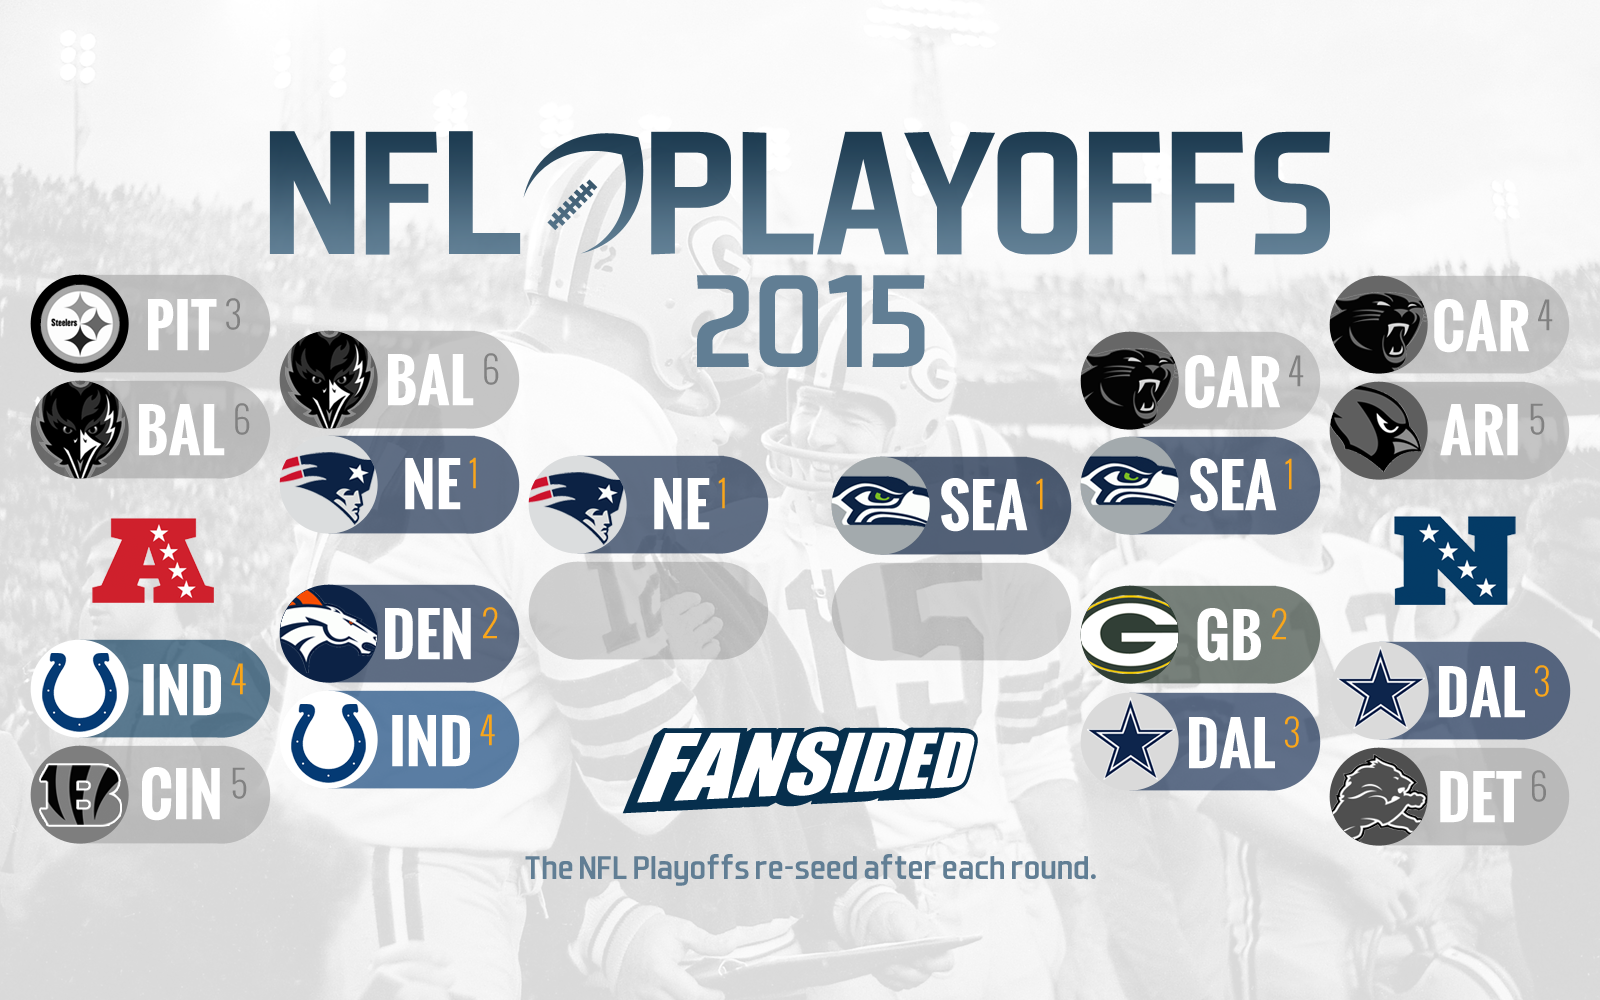 seahawks vs patriots line 2015 playoff bracket nfl